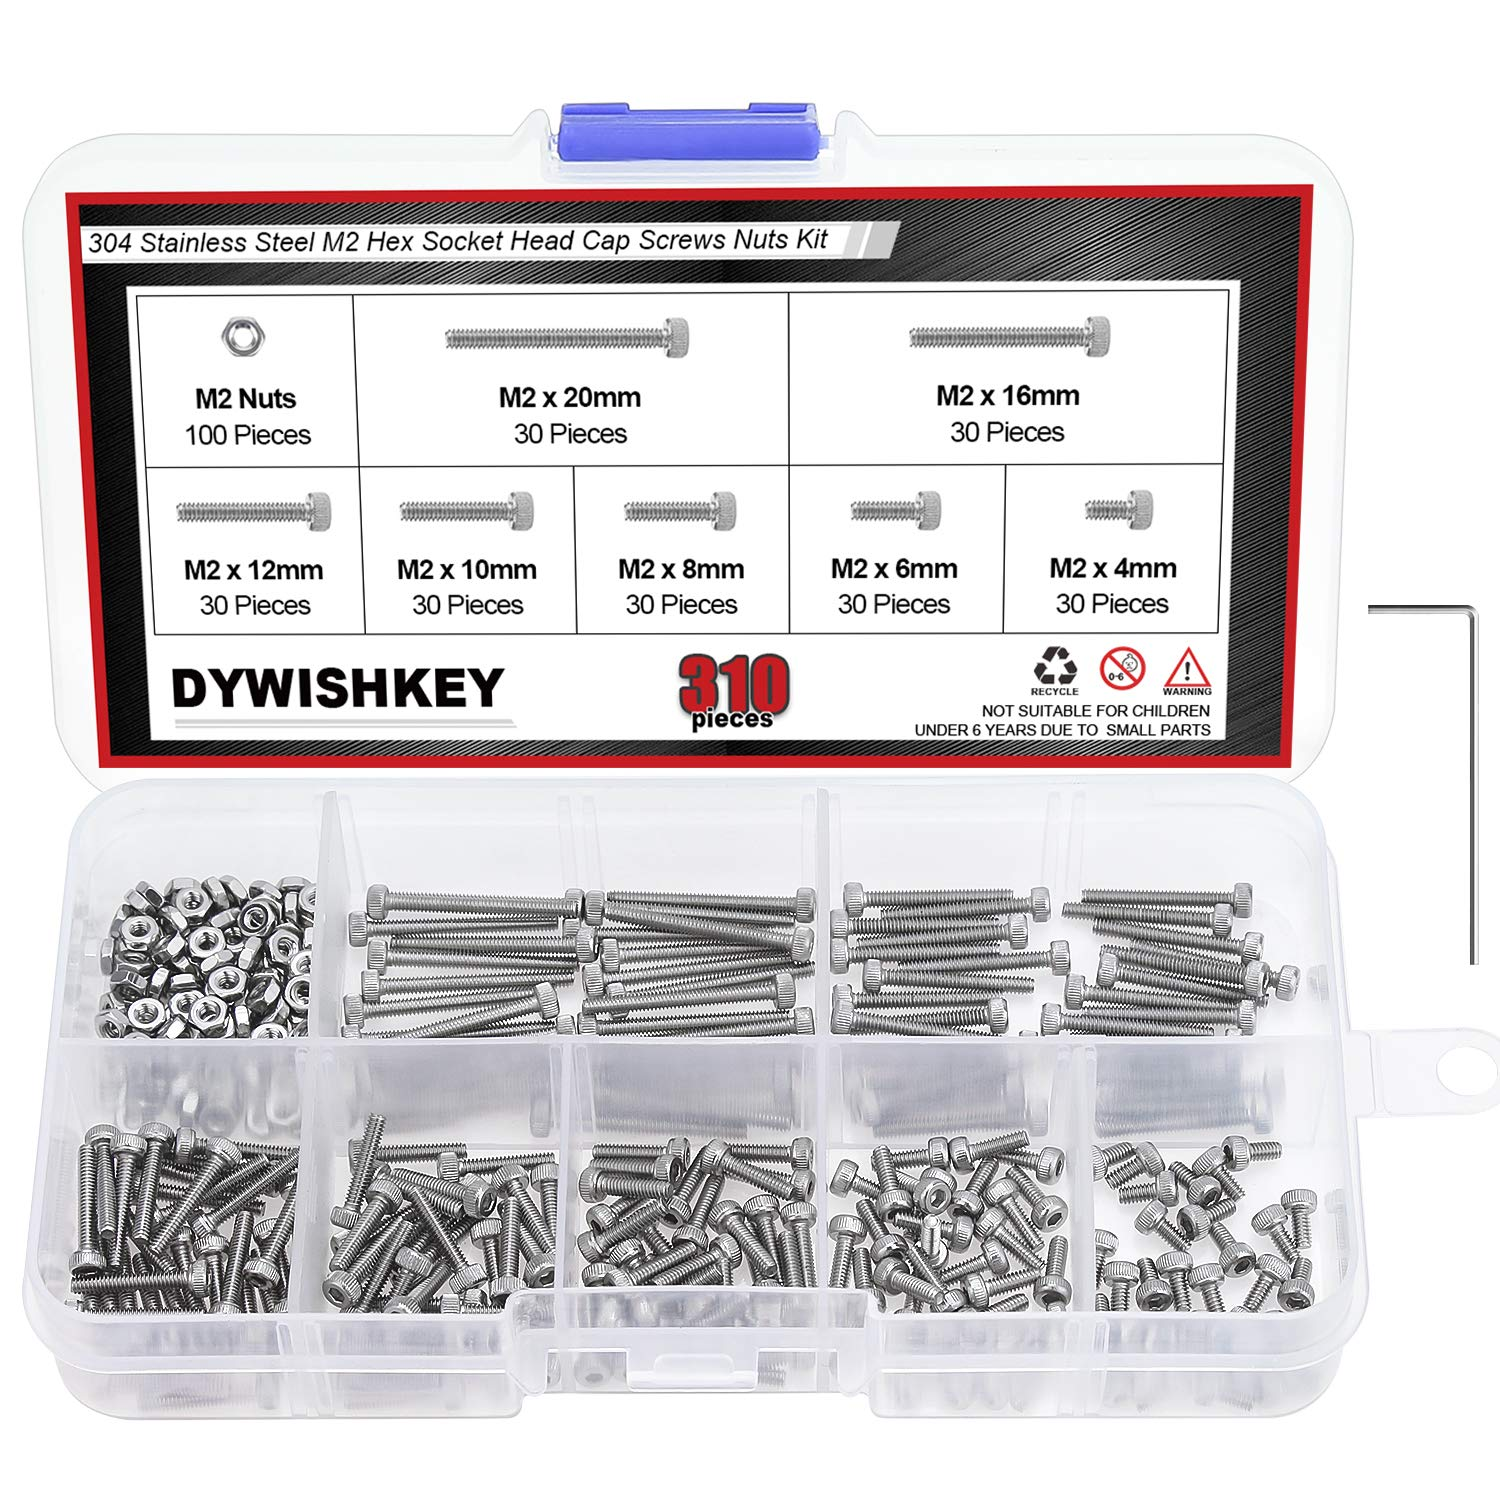 304 Stainless Steel Hilitchi 420pcs M2 3 4 304 Stainless Steel Hex Socket Head Cap Screws Nuts Assortment Kit with Box